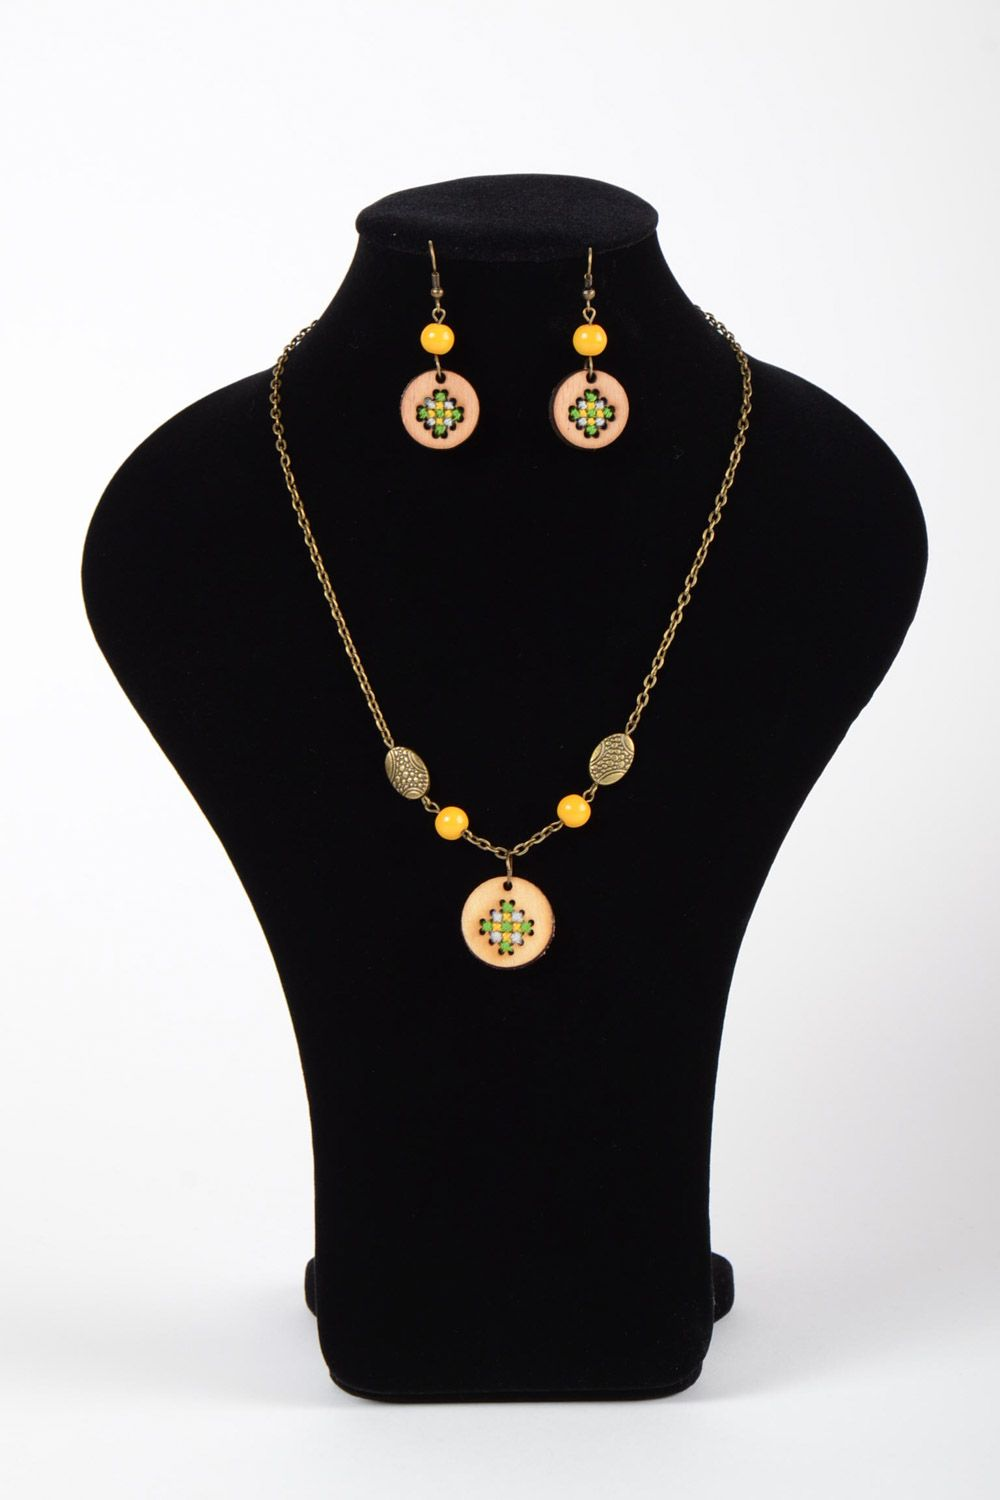 Handmade plywood jewellery round earrings and pendant with embroidery in ethnic style photo 2